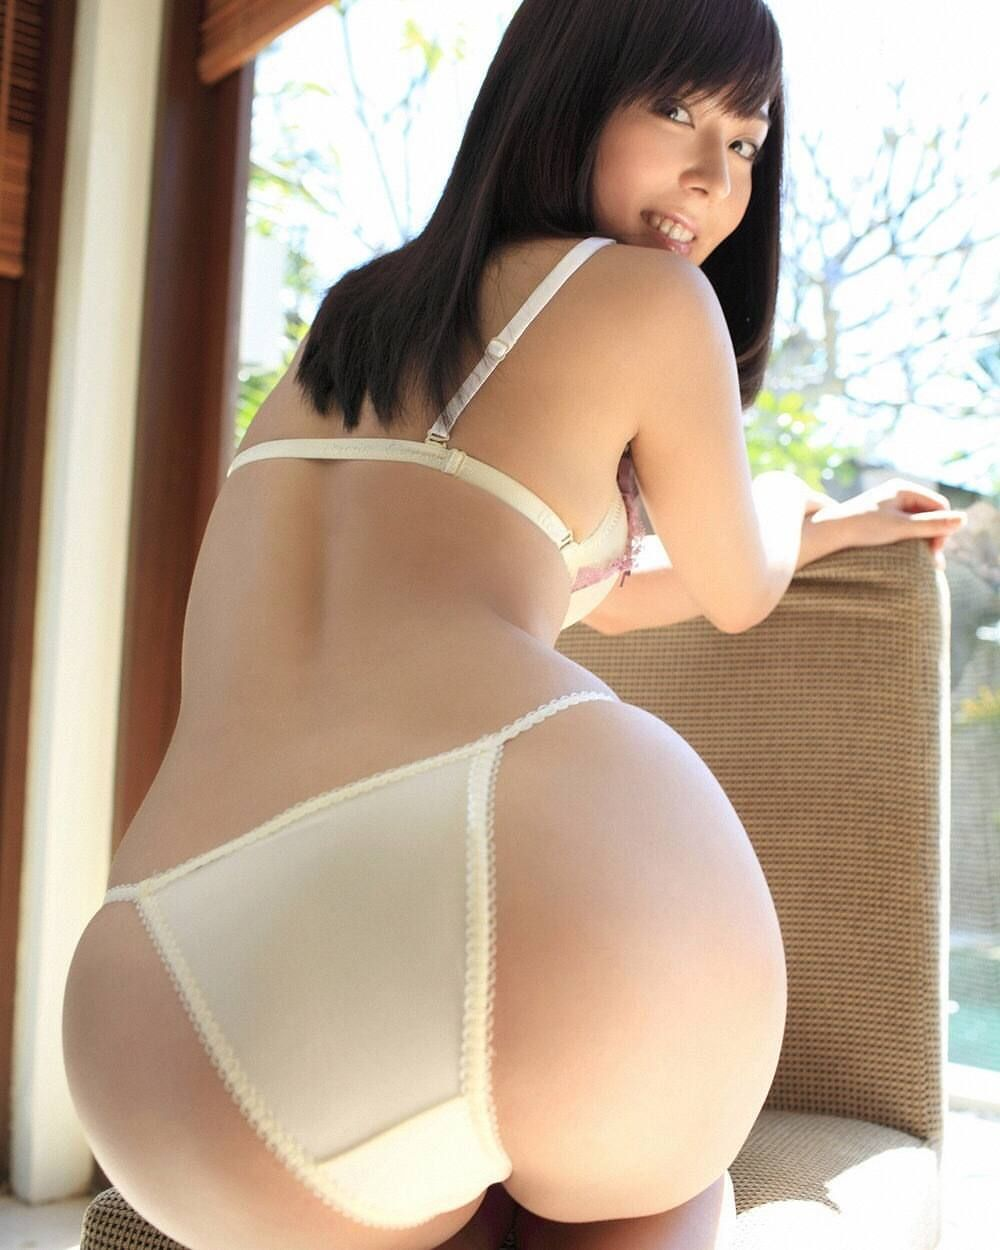 Big ass asian women stock photo